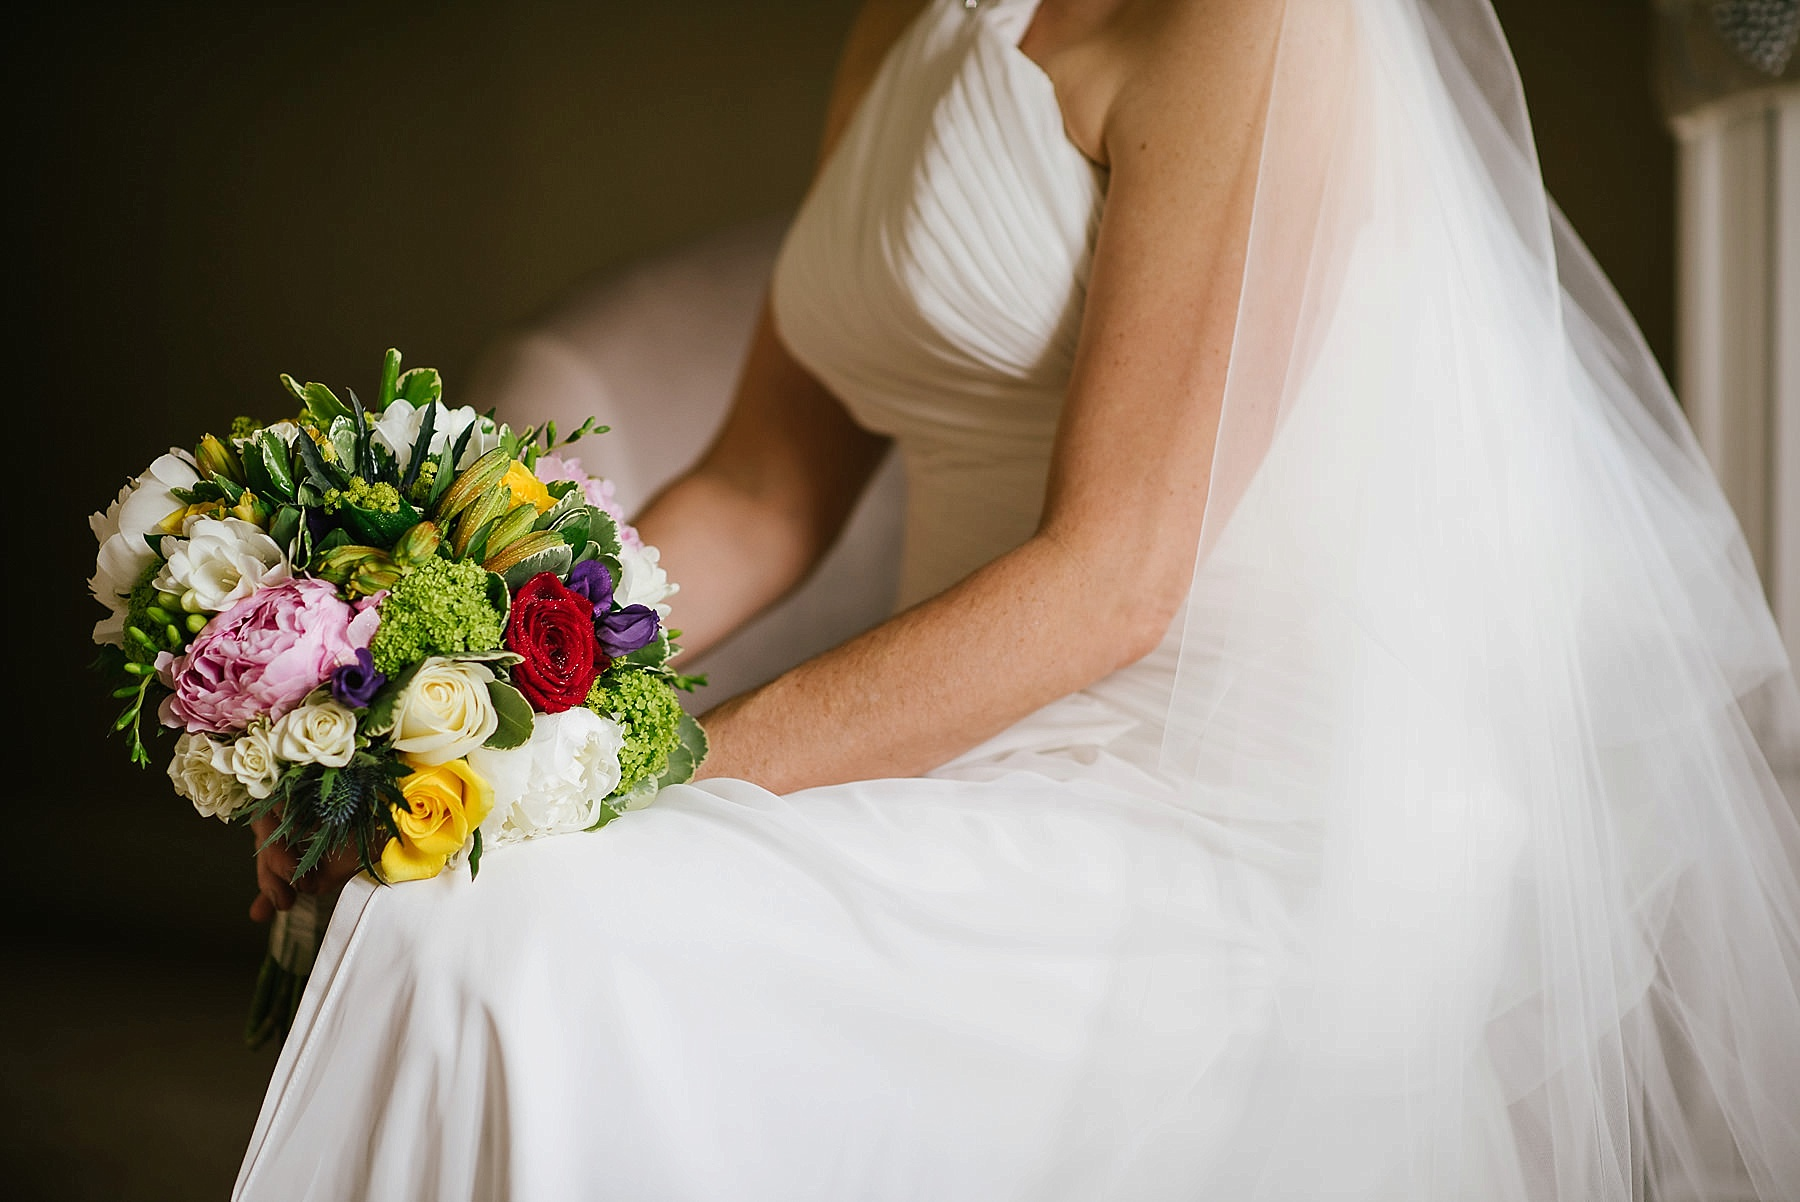 close up of the wedding flowers and dress